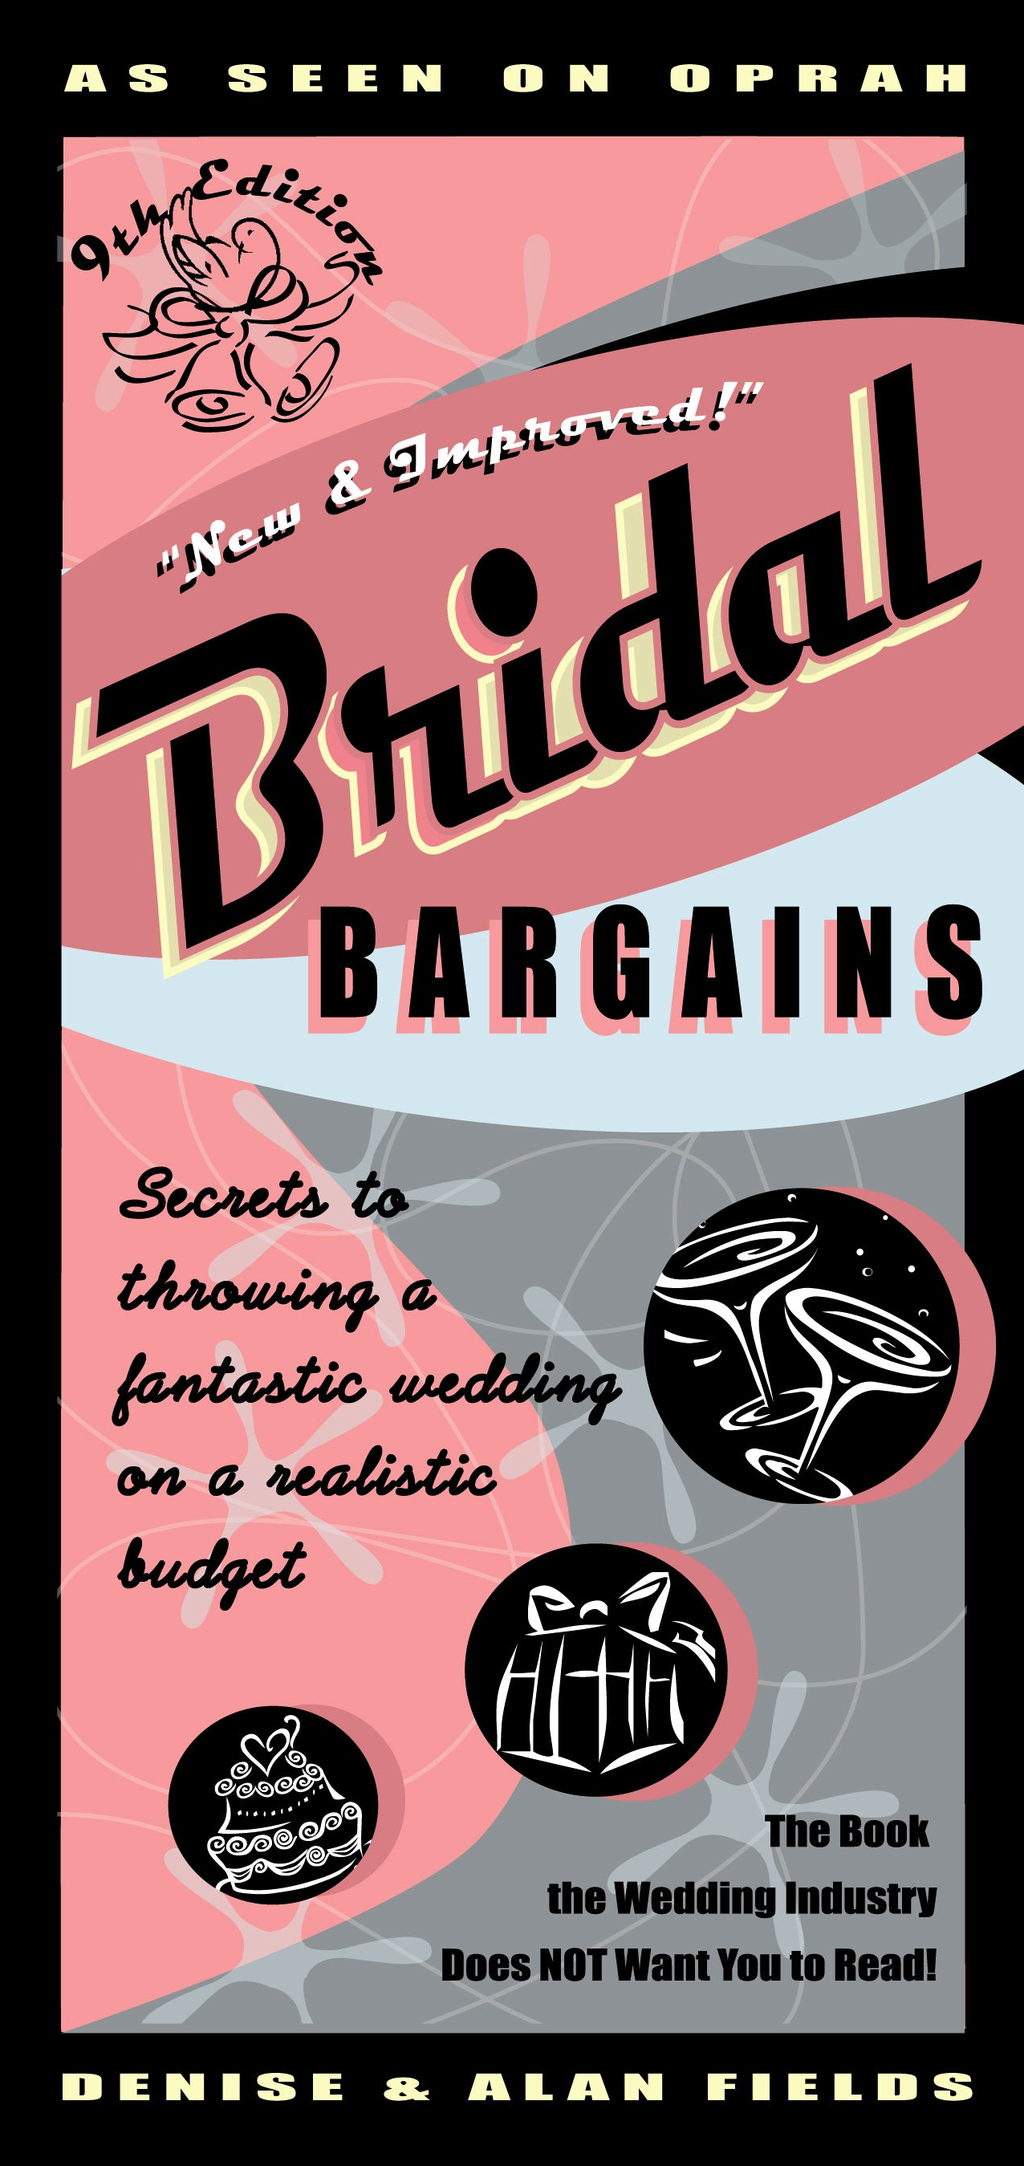 Bridal Bargains 9e: Secrets to Throwing a Fantastic Wedding on a Realistic Budget